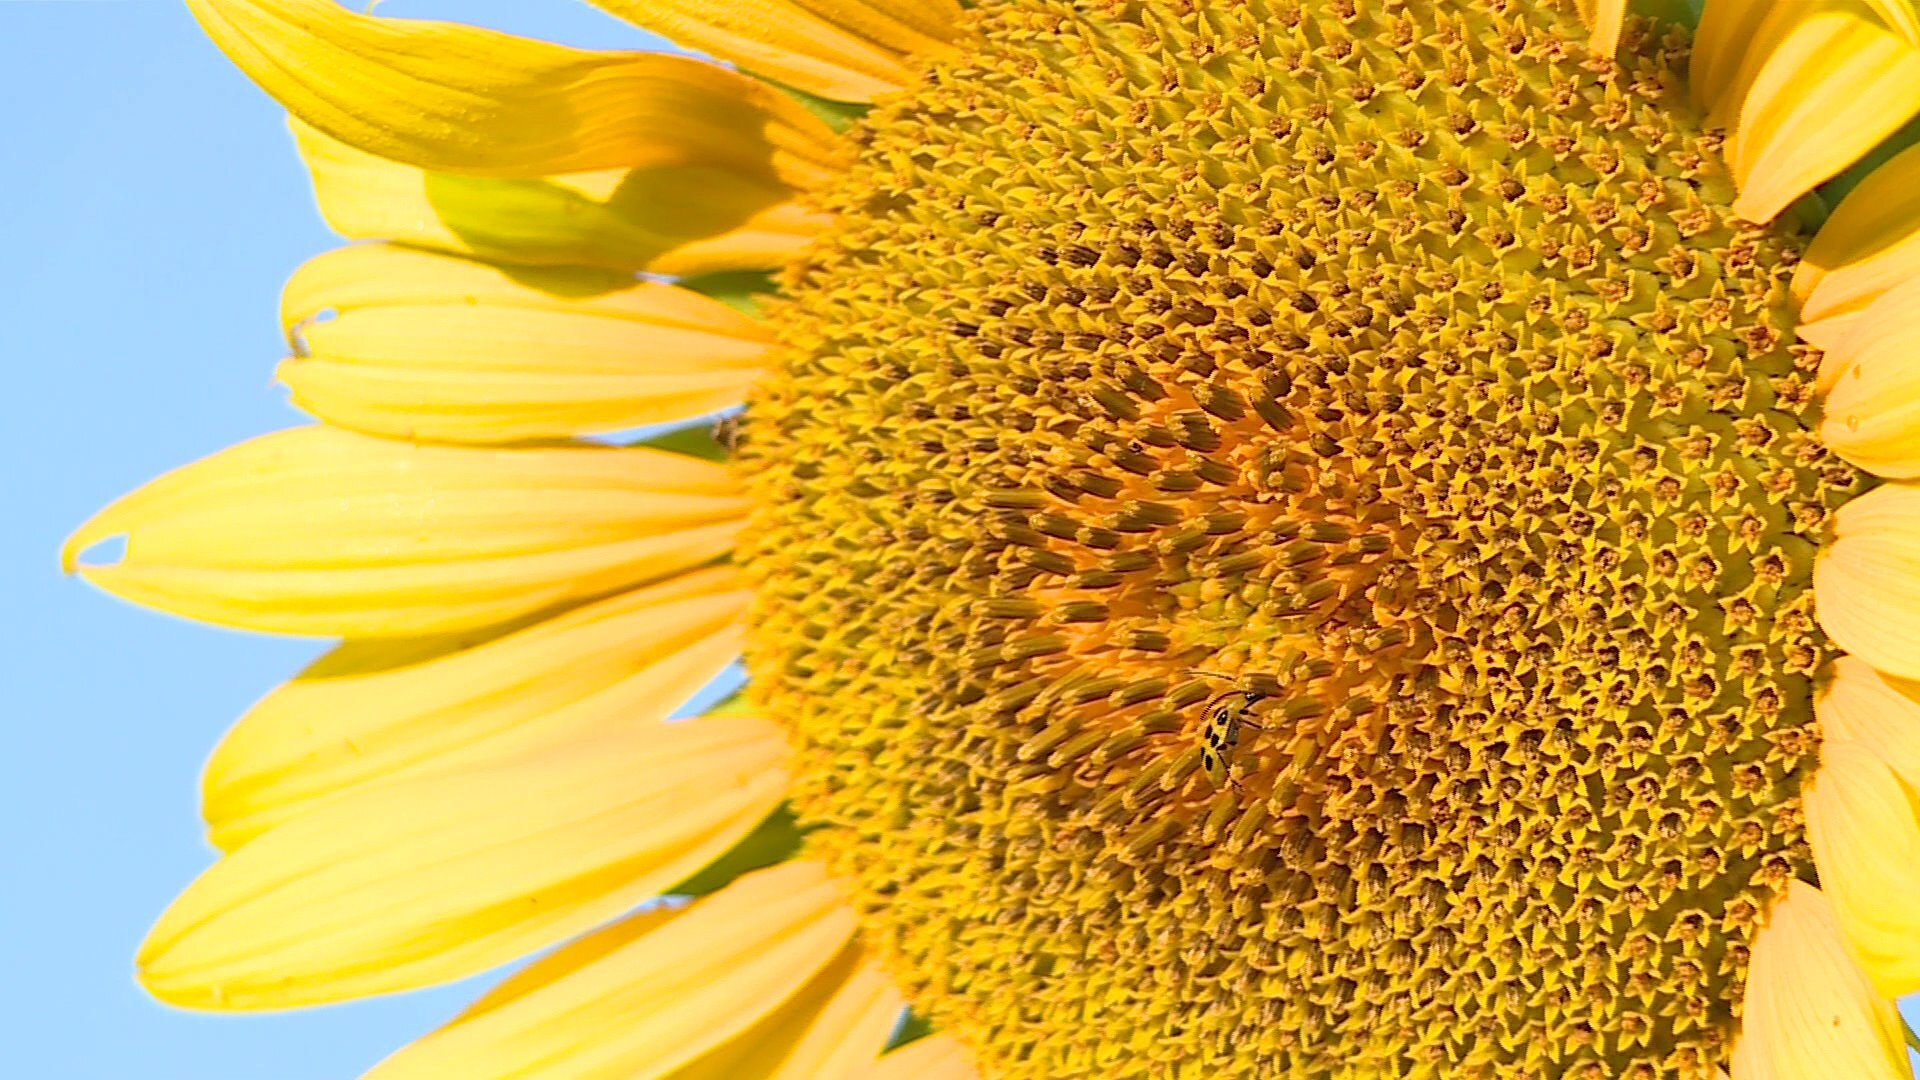 Photos: 🌻Walk through rows of towering flowers at first-ever Goochland Sunflower Festival